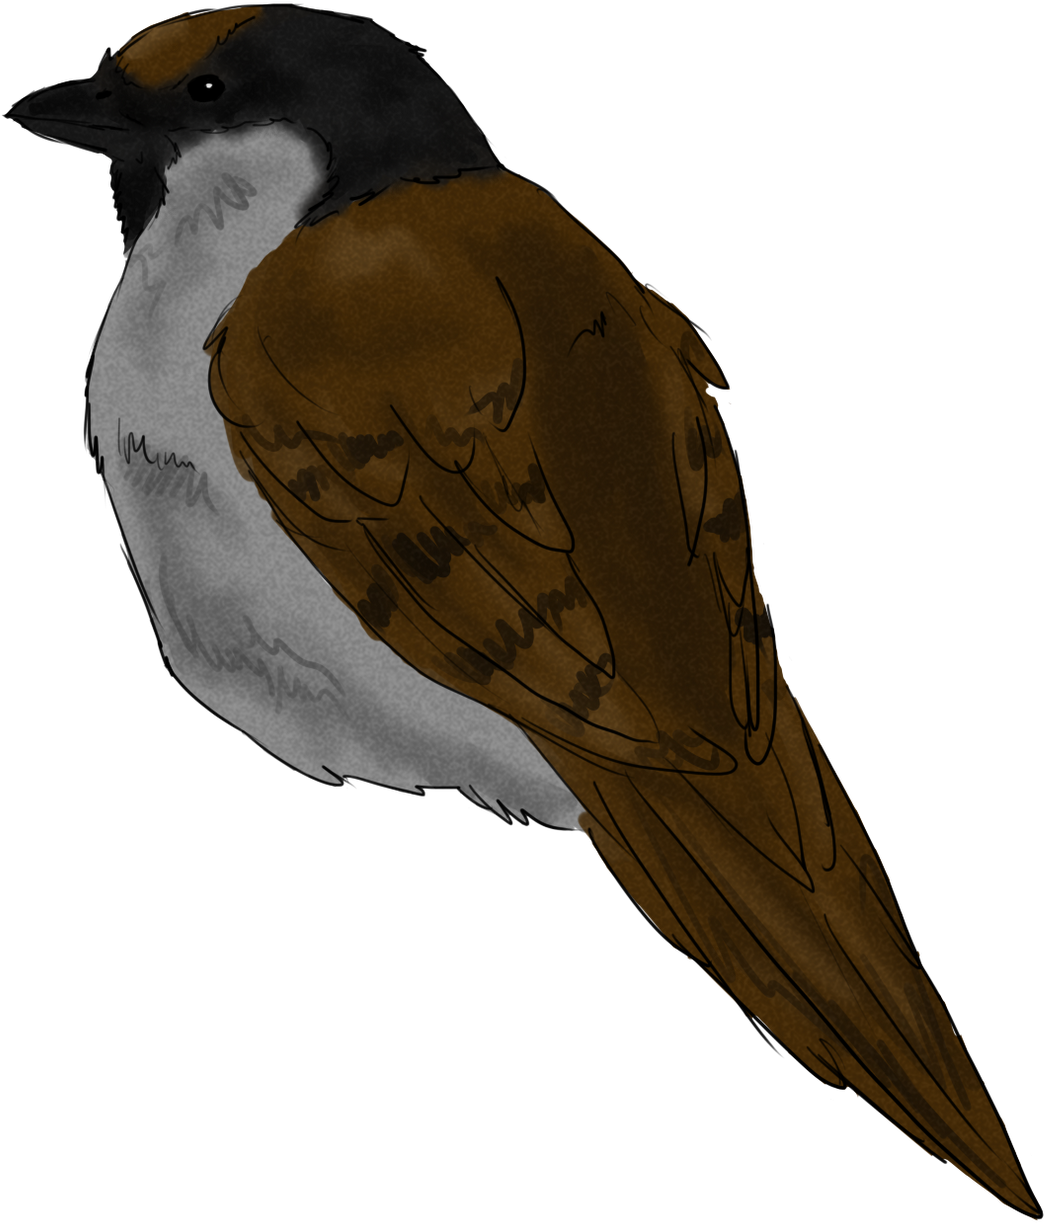 Download Sparrow Sketch Swallow Png Image With No Background Pngkey Com